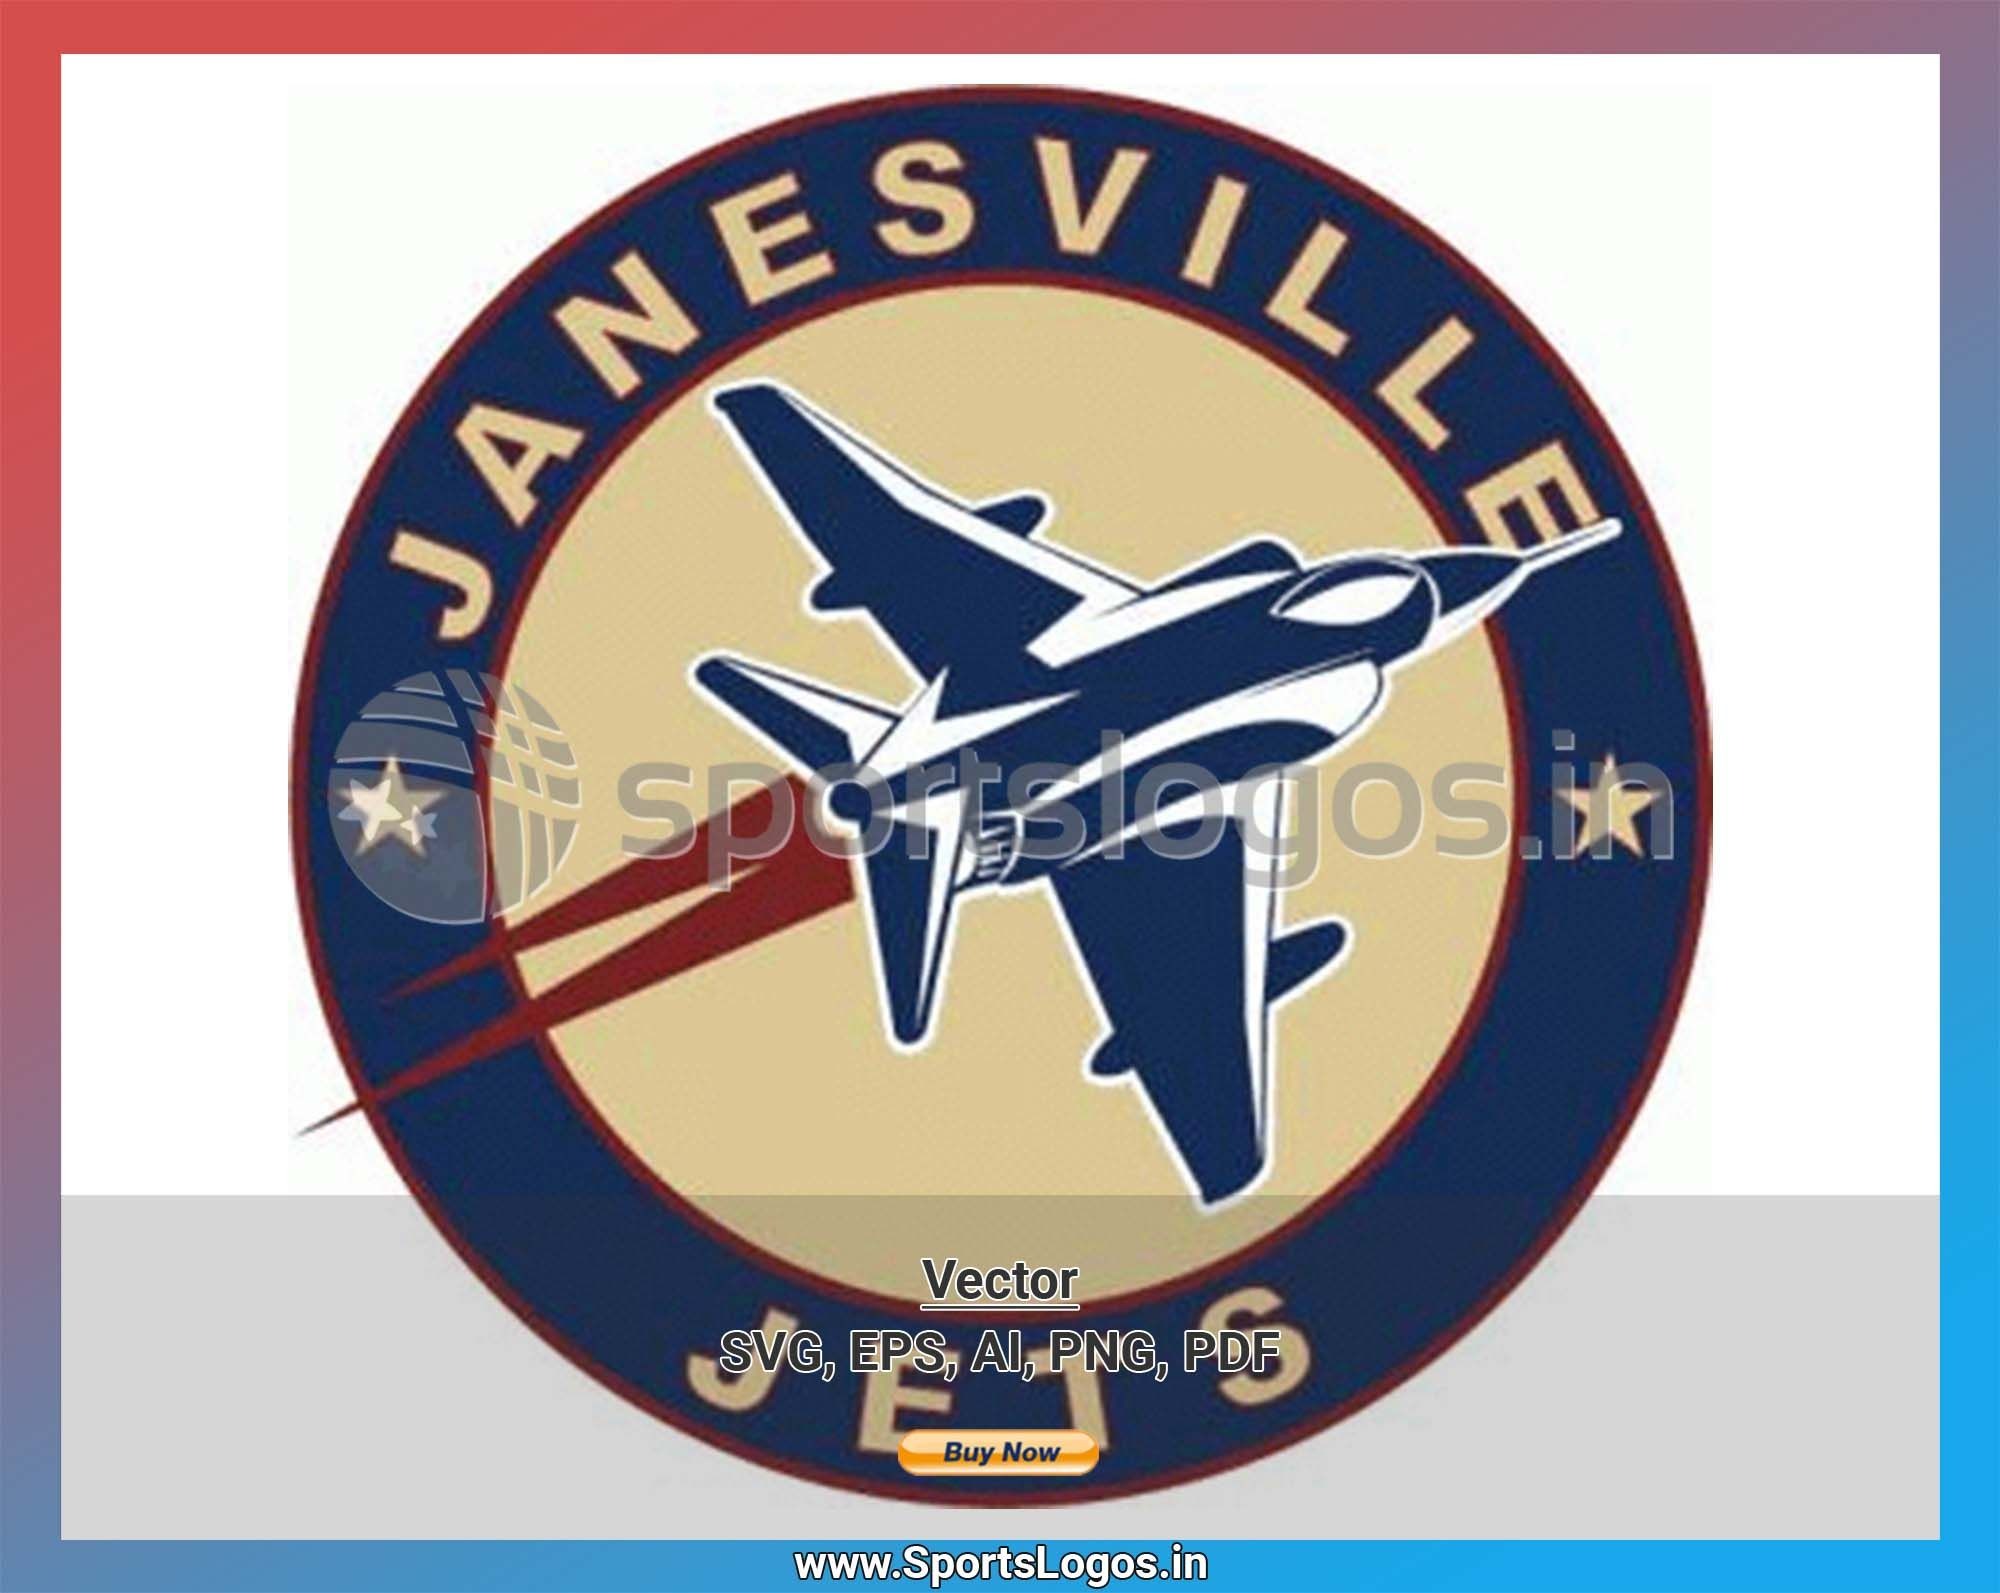 Janesville Jets Hockey Sports Vector Svg Logo In 5 Formats Spln002083 Sports Logos Embroidery Vector For Nfl Nba Nhl Mlb Milb And More In 2020 American Hockey League Embroidery Logo Sport Hockey